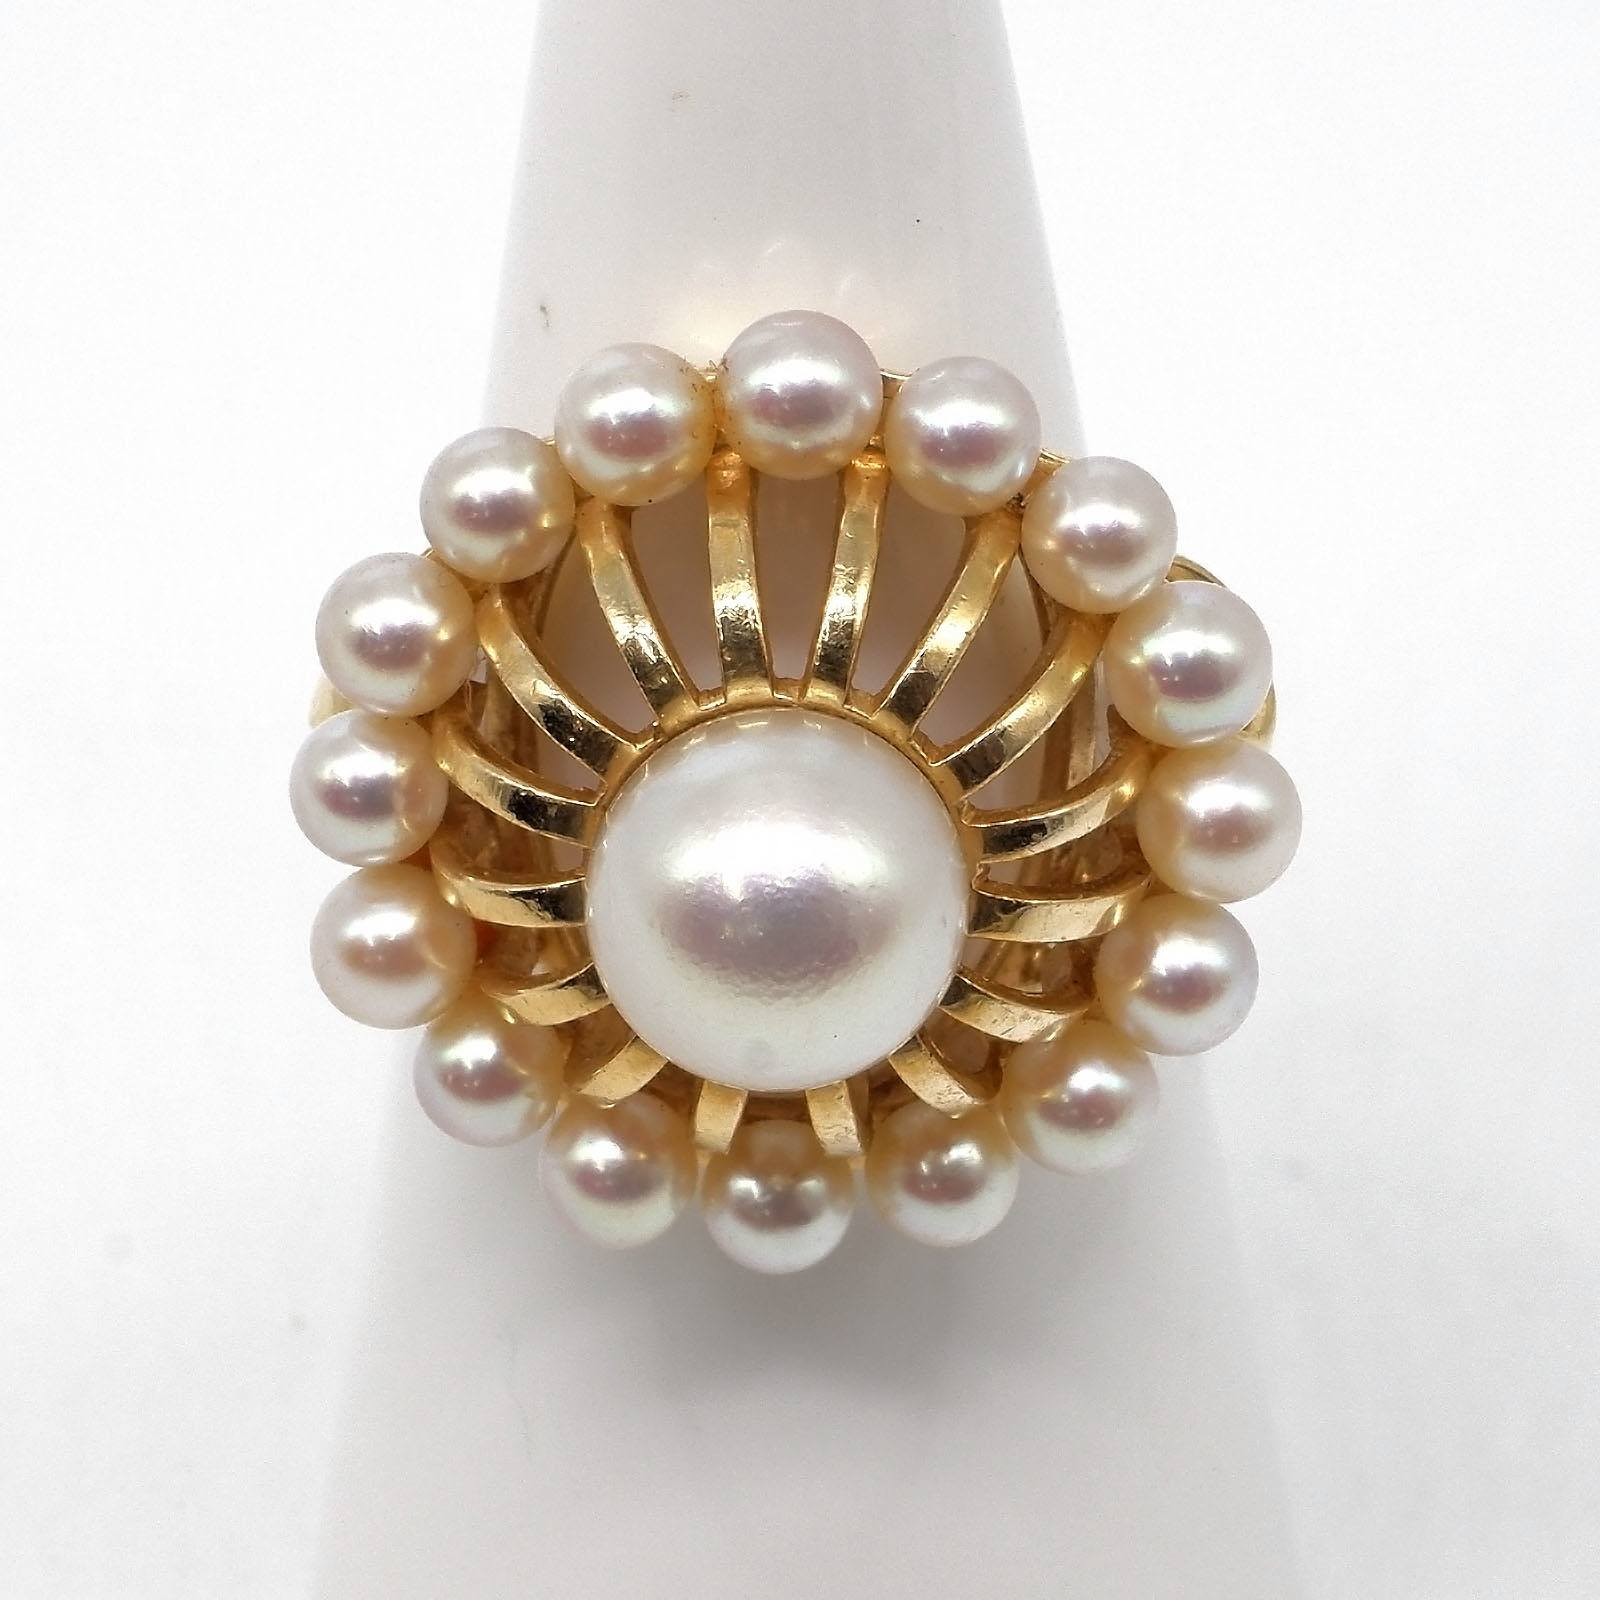 '14ct Yellow Gold Pearl Ring with White with High Lustre Pearl with Around Sixteen Round Pearls, 6.9g'